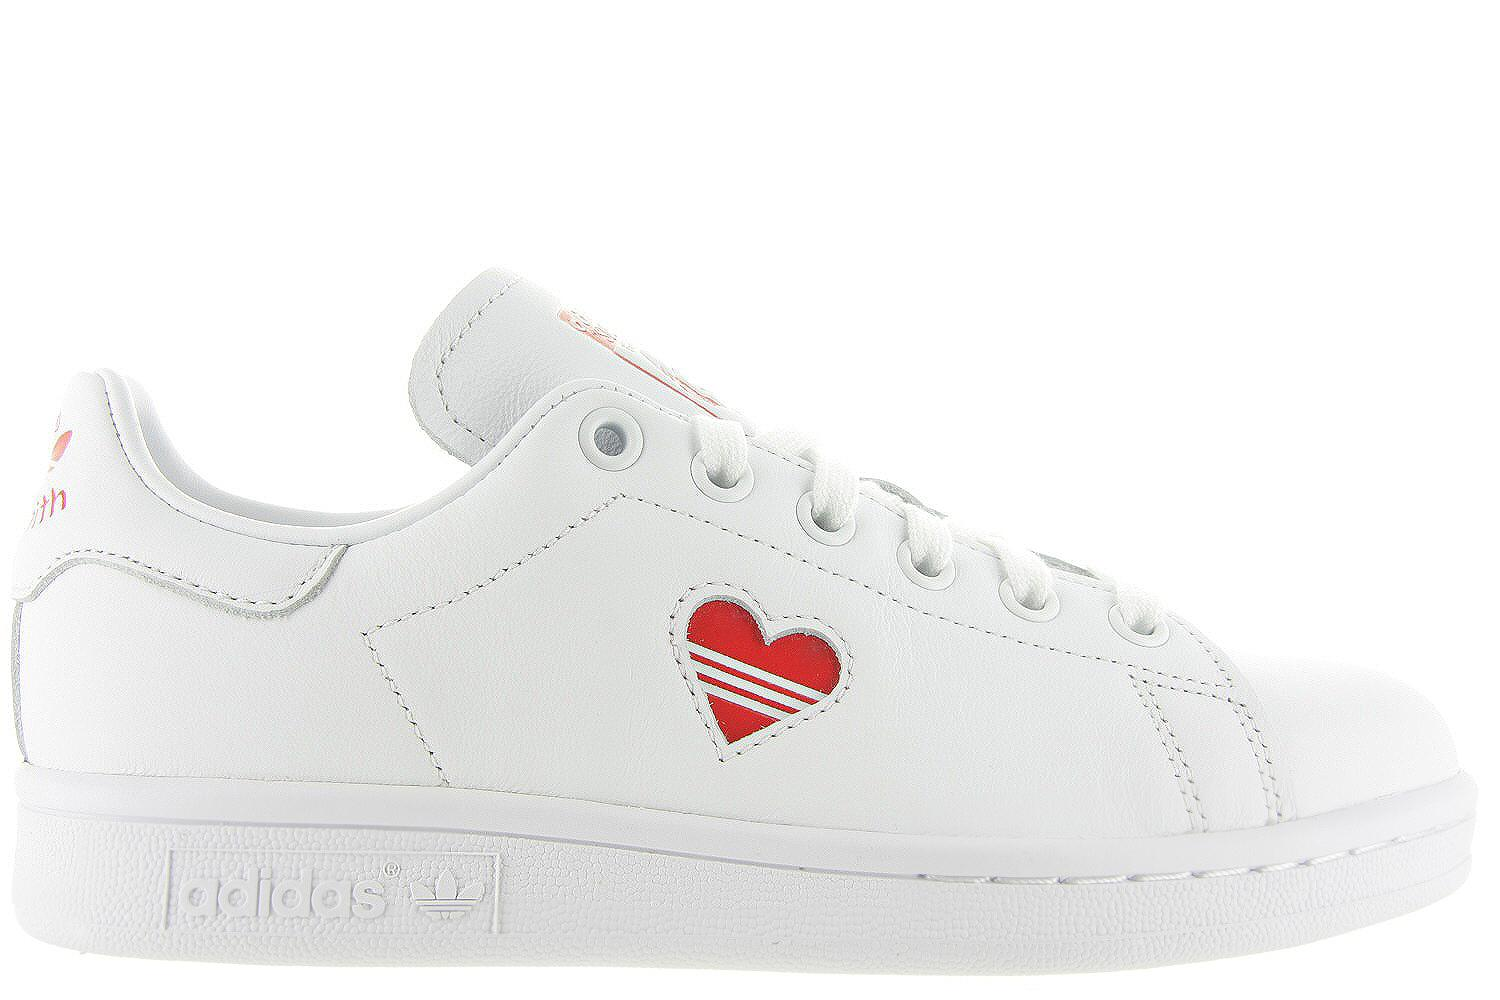 Adidas Sneakers - Stan Smith Valentijn Dames - Adidas Originals  Damesschoenen